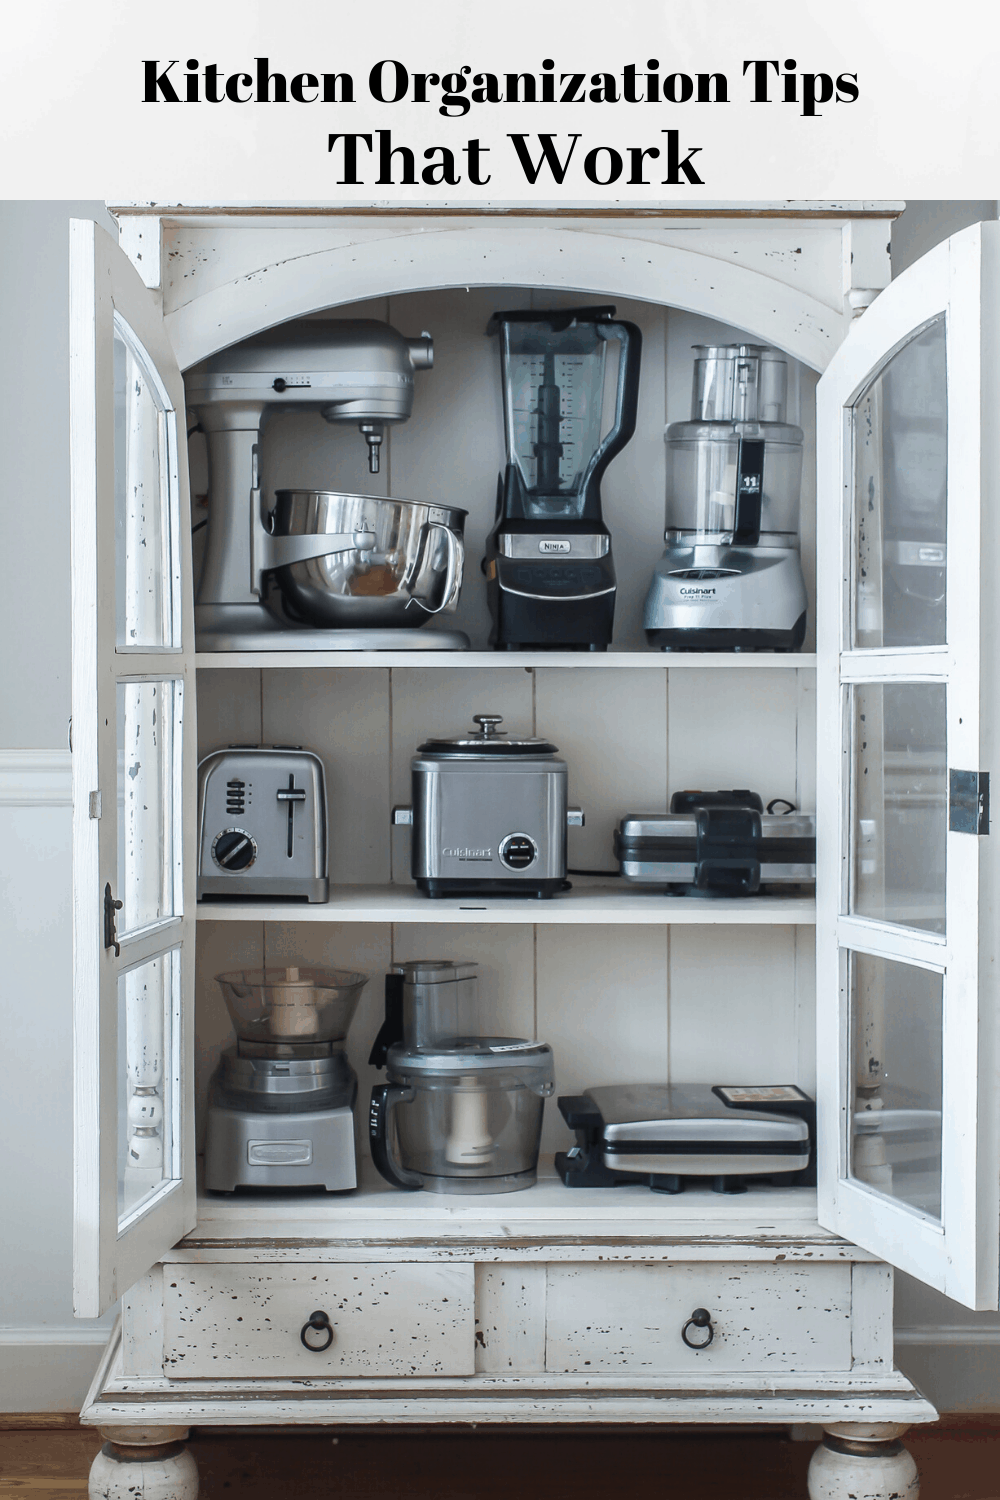 Kitchen organization tips that work. These tips will help keep your kitchen cleaner and more organized.